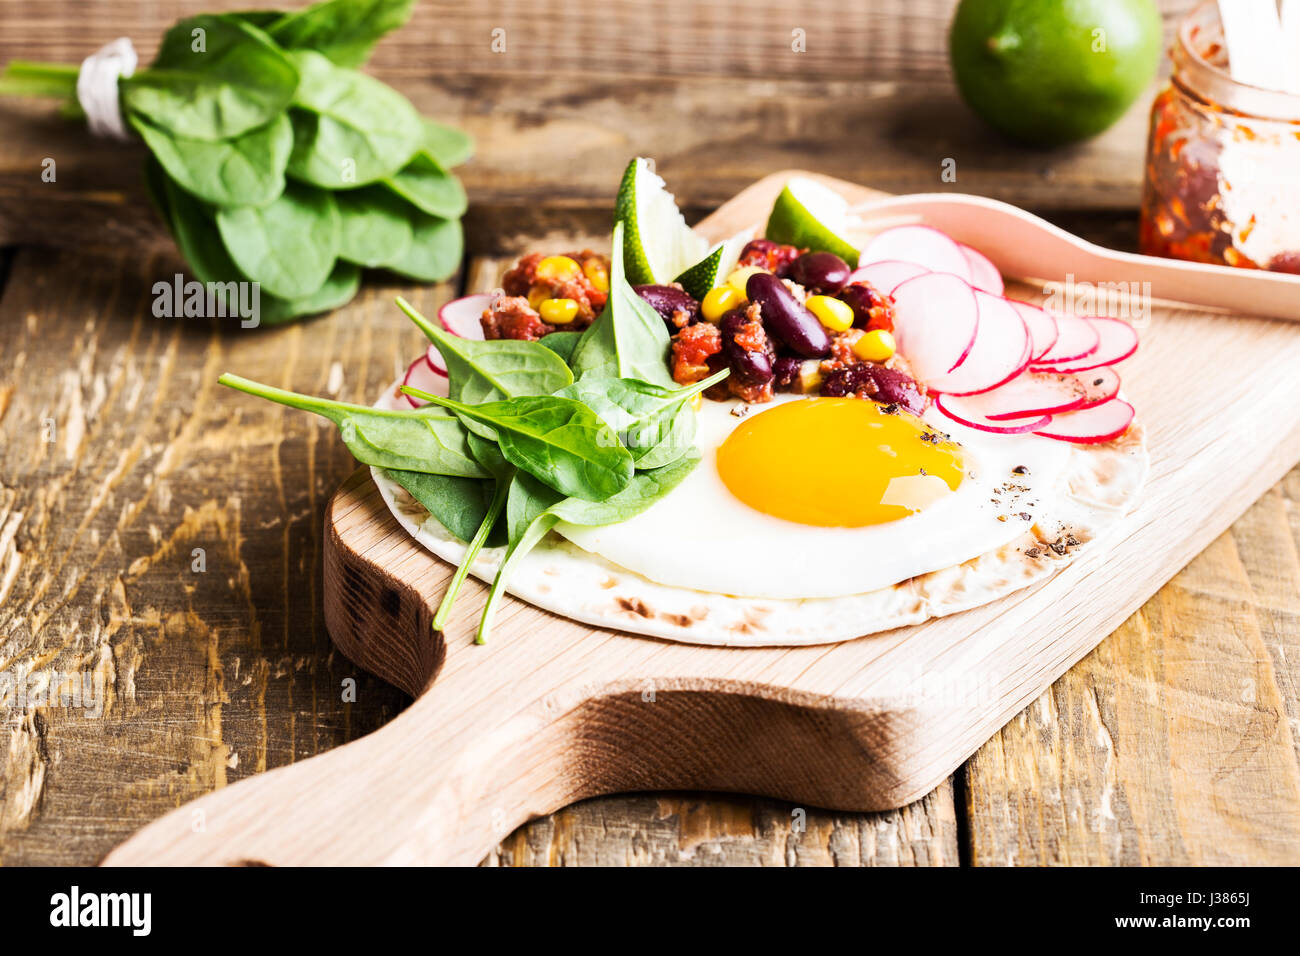 Fried egg tacos with chili con carne on rustic cutting board, Mexican traditional food - Stock Image